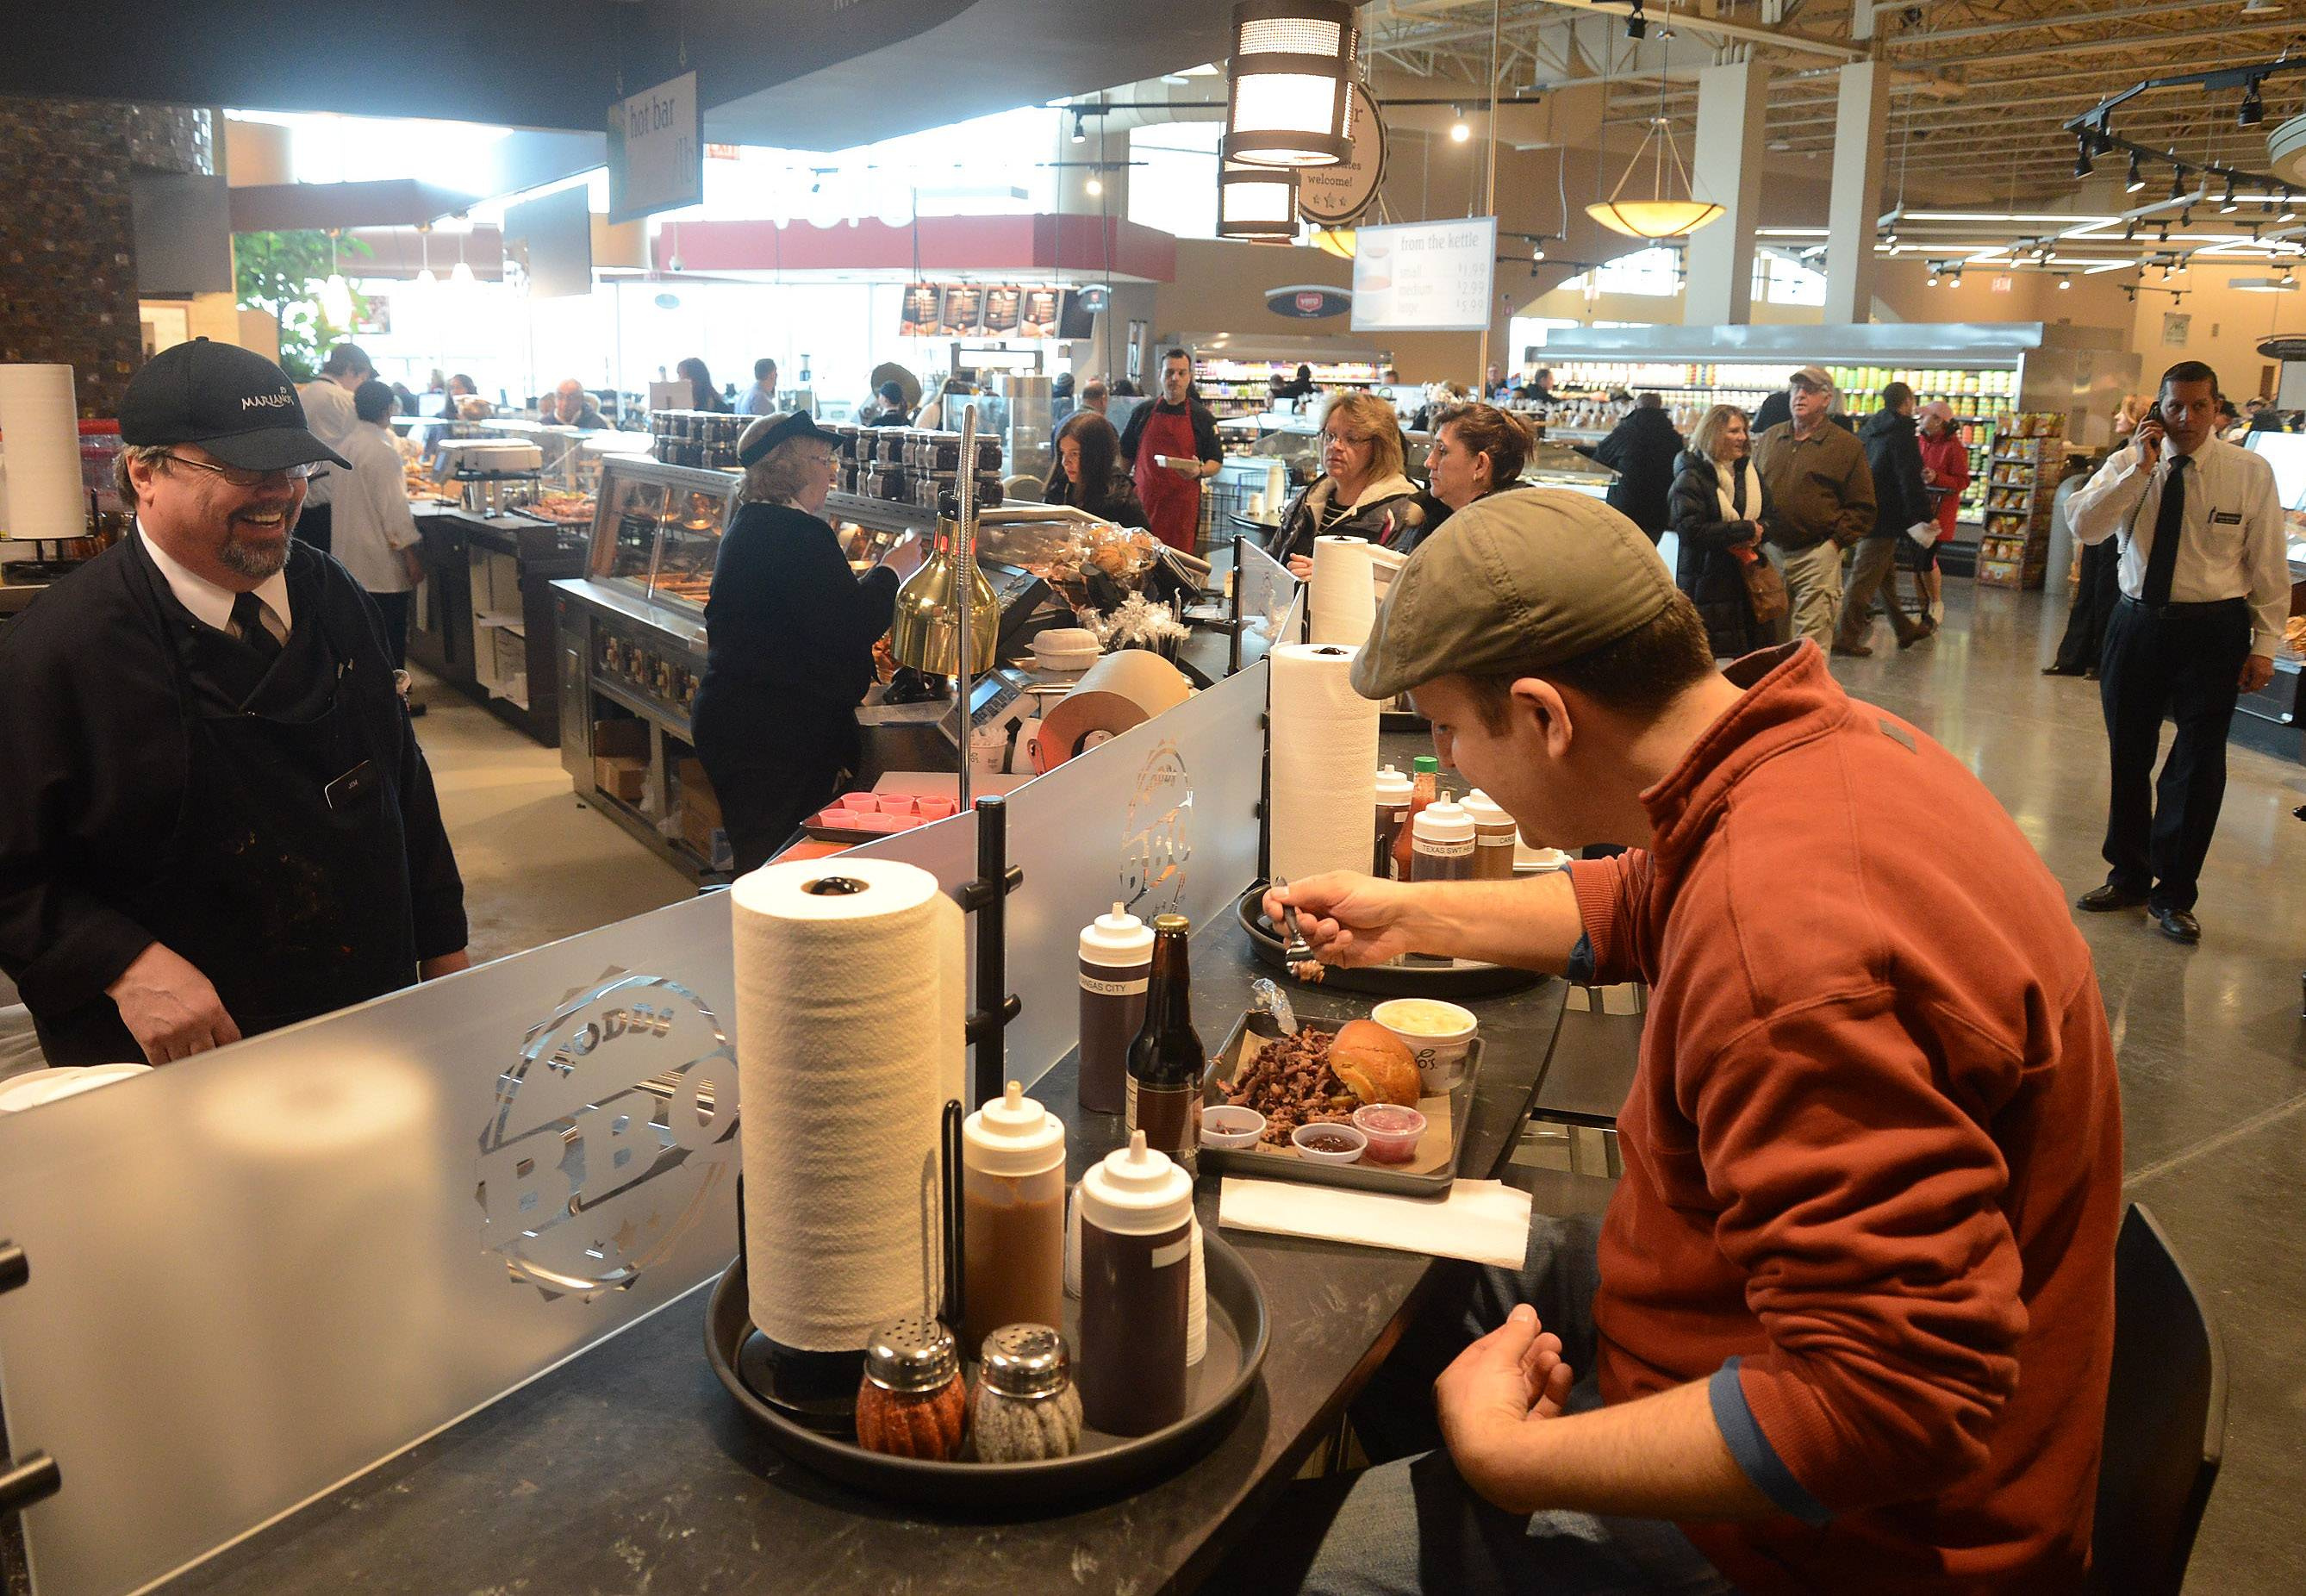 Dave Whiteside of Mount Prospect tries out the smoked beef brisket sandwich at Todds BBQ inside the new Lake Zurich Mariano's grocery store that opened in February.